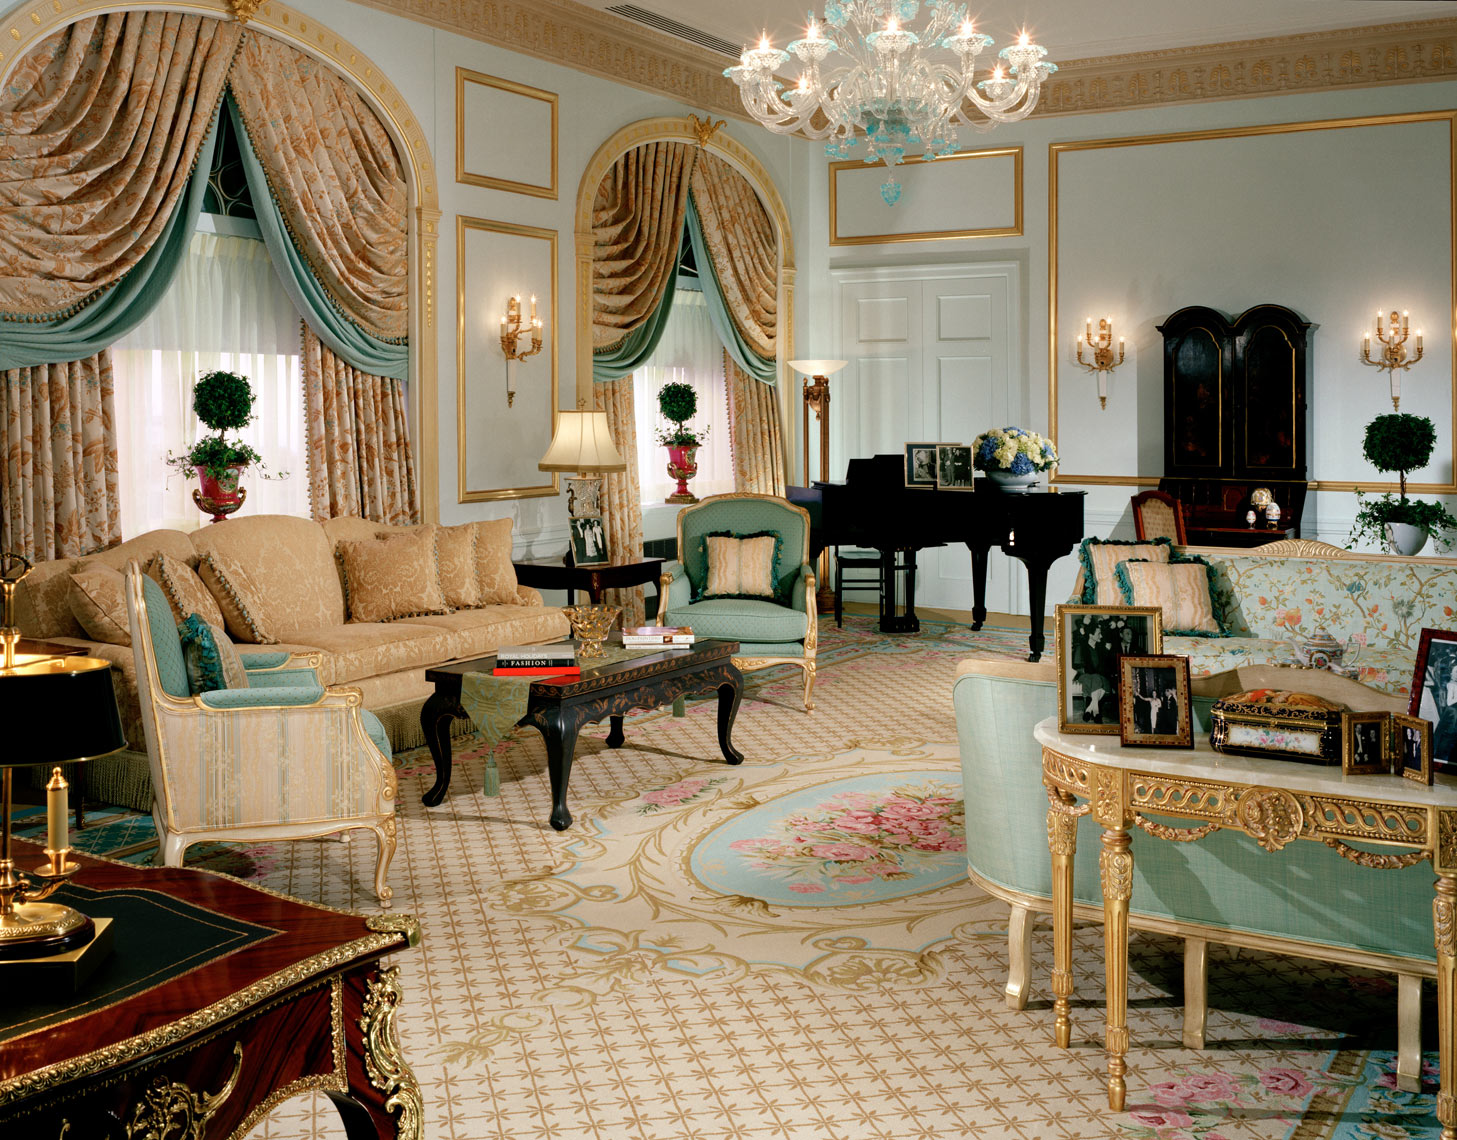 Waldorf Towers Royal Suite, Interior Design by Kenneth E. Hurd & Associates